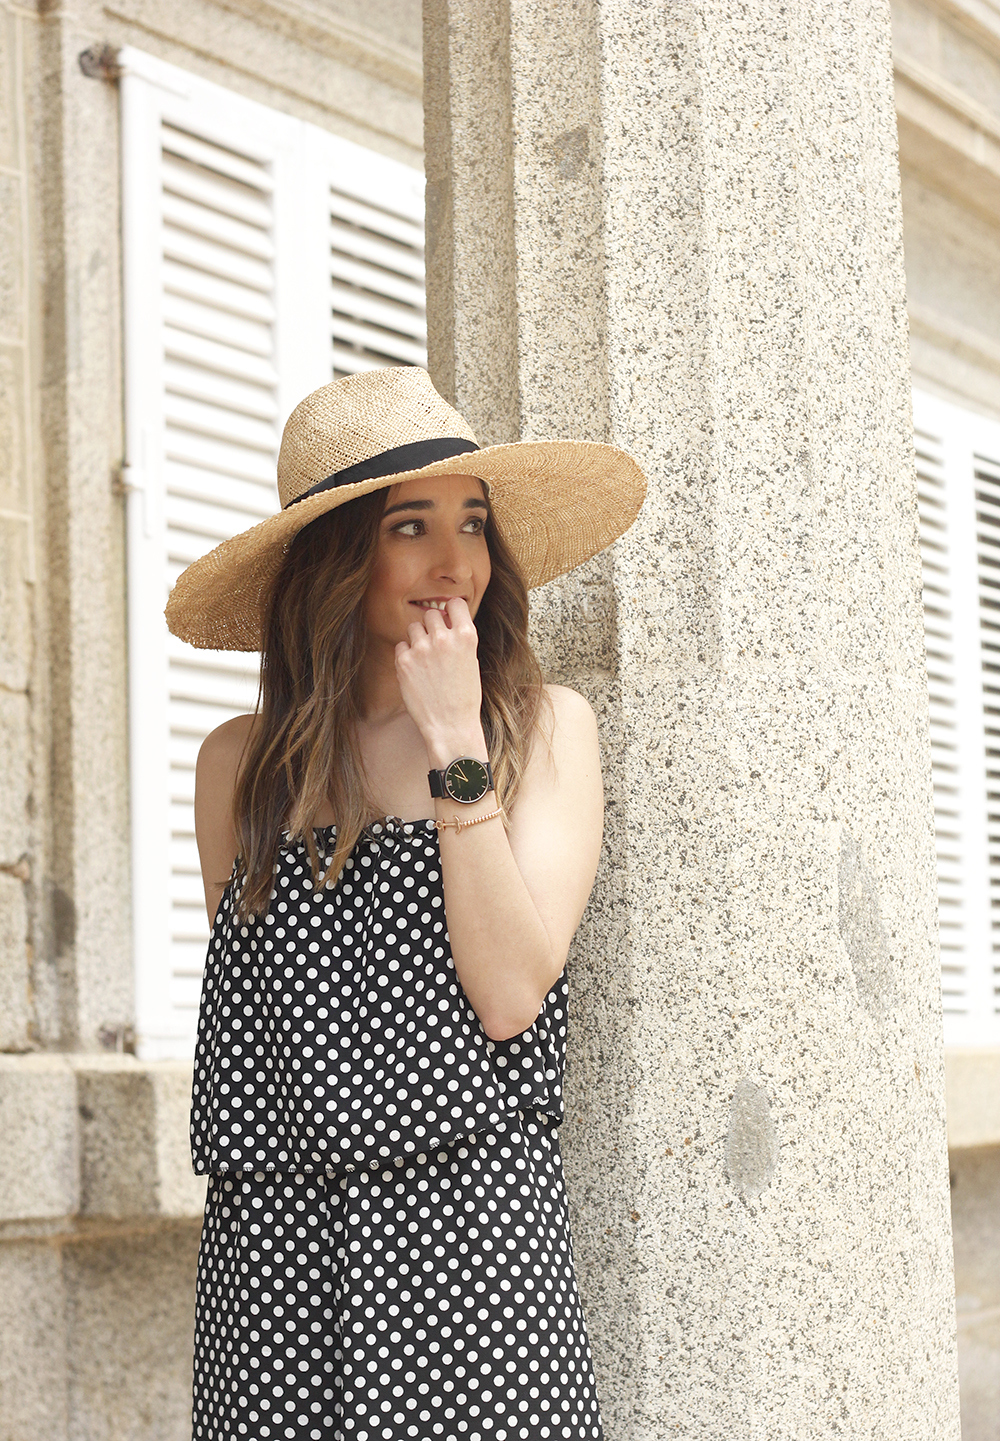 polka dot jumpsuit straw hat flat shoes street style spring outfit 201816